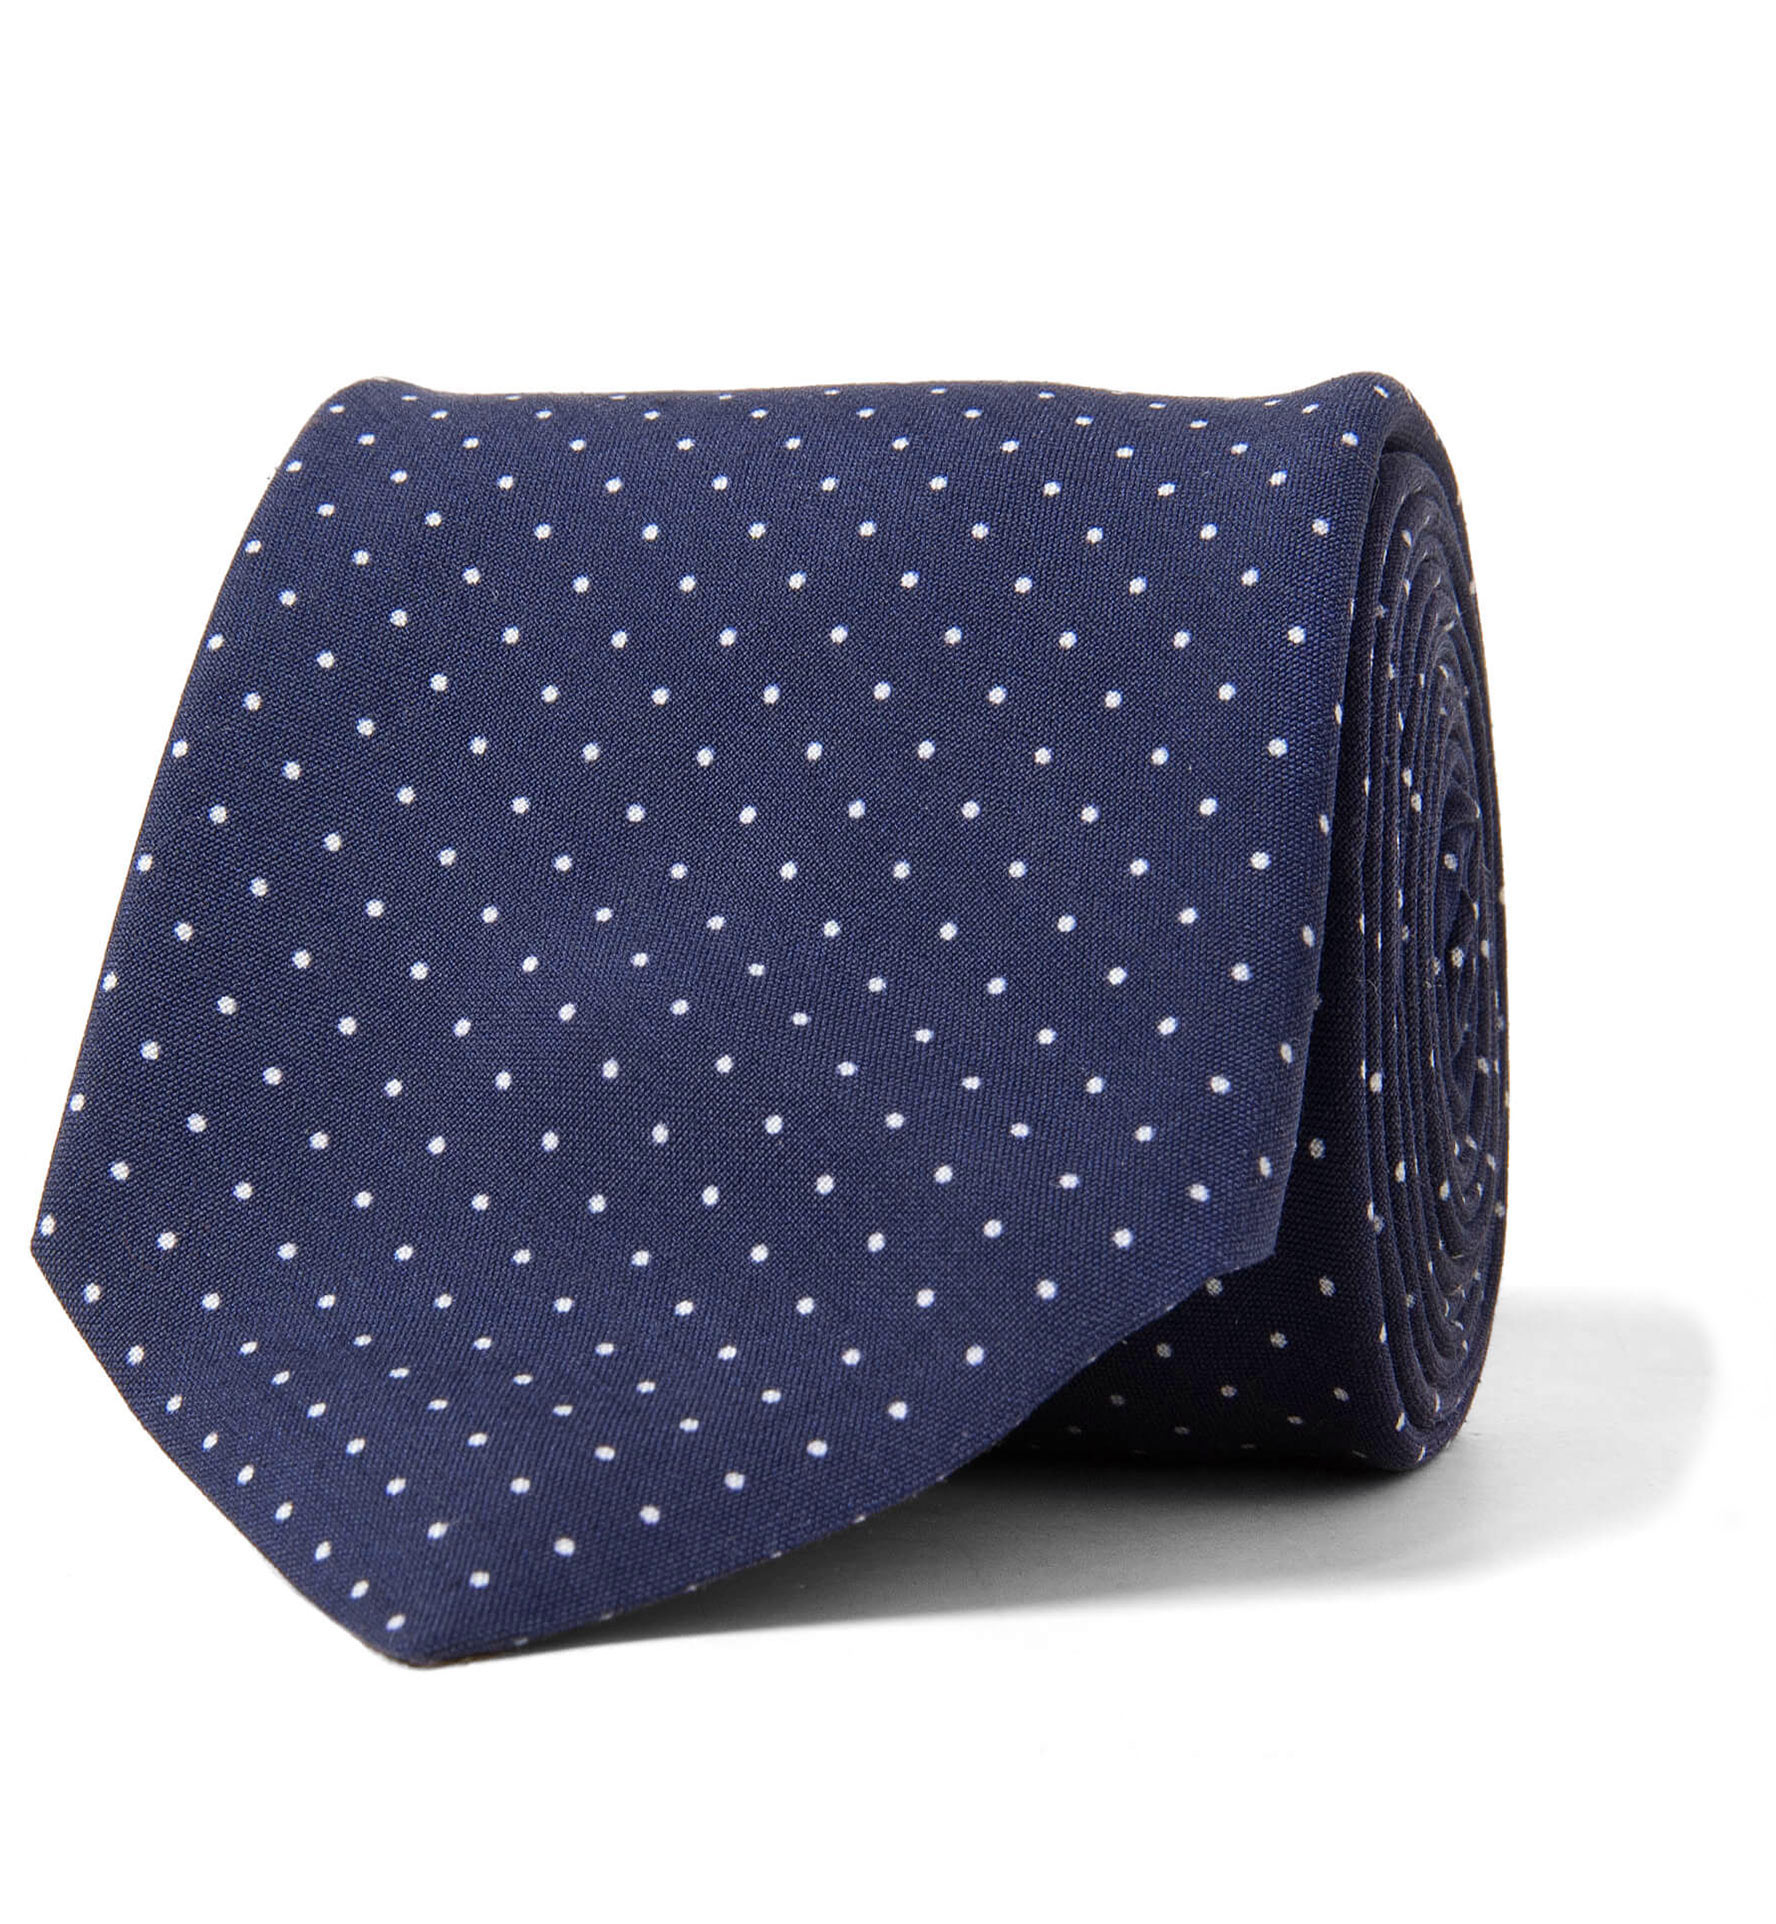 Zoom Image of Navy and White Printed Pindot Tie